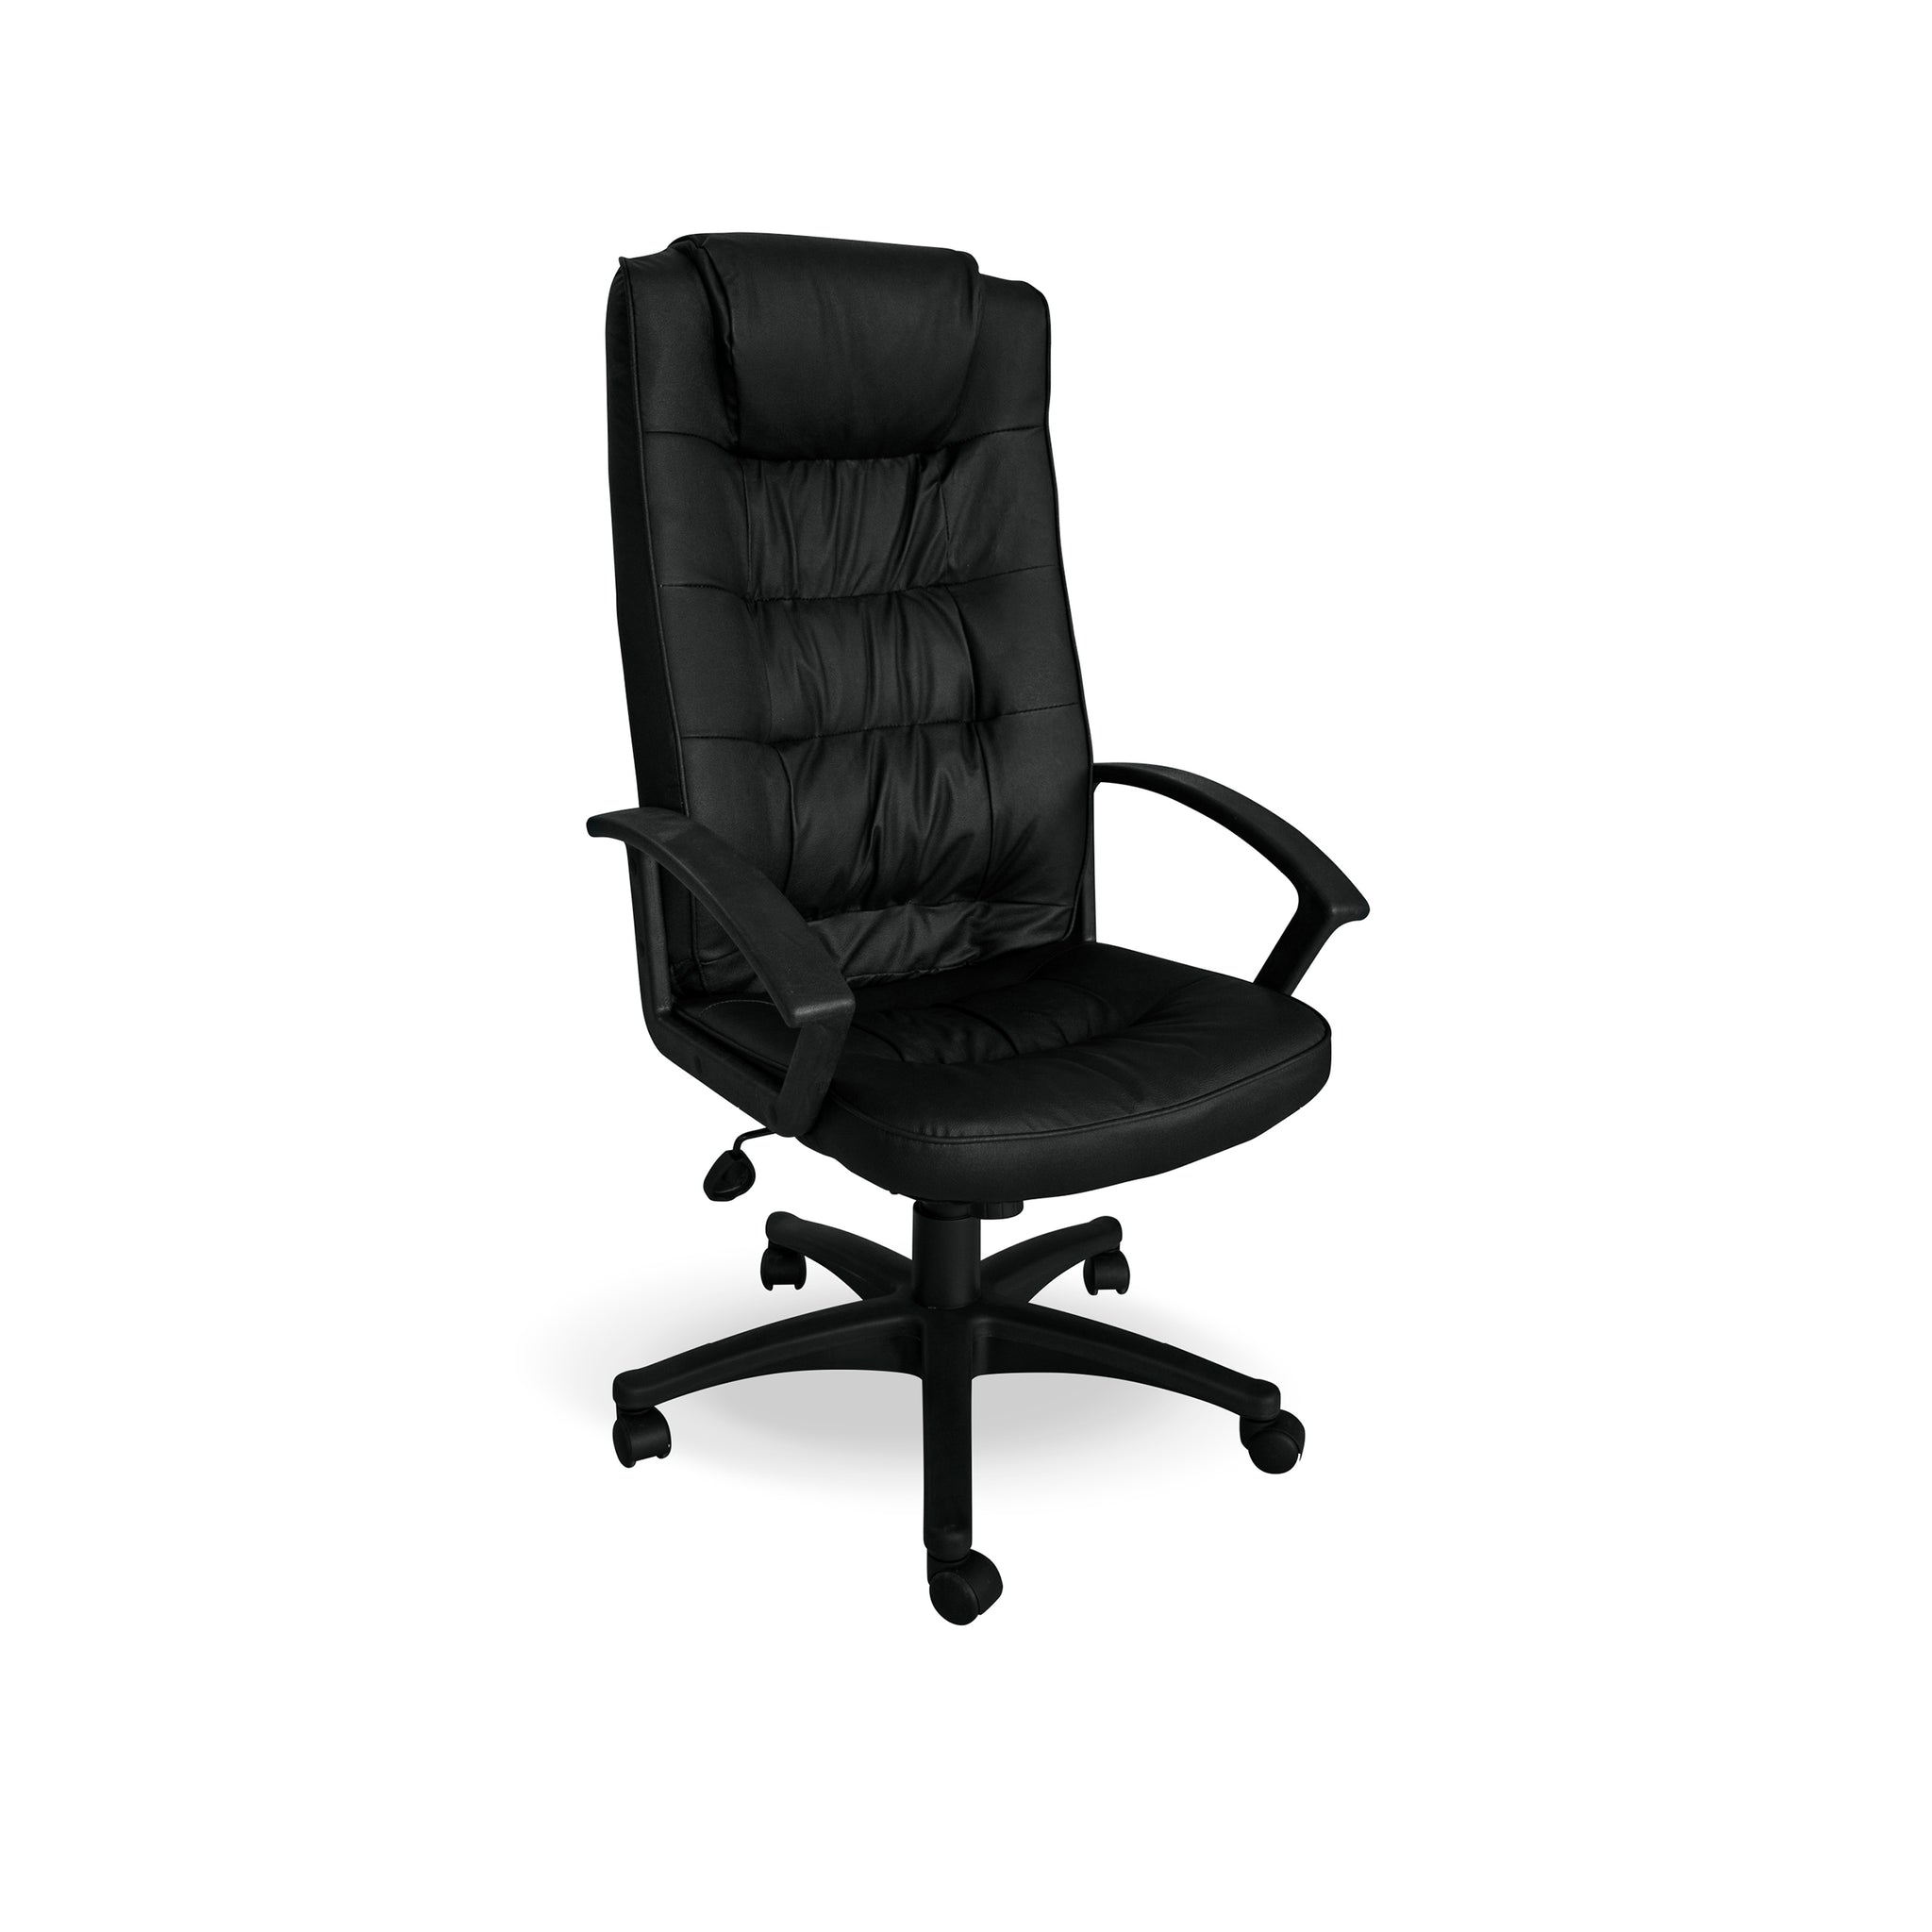 Hedcor concorde high back office chair